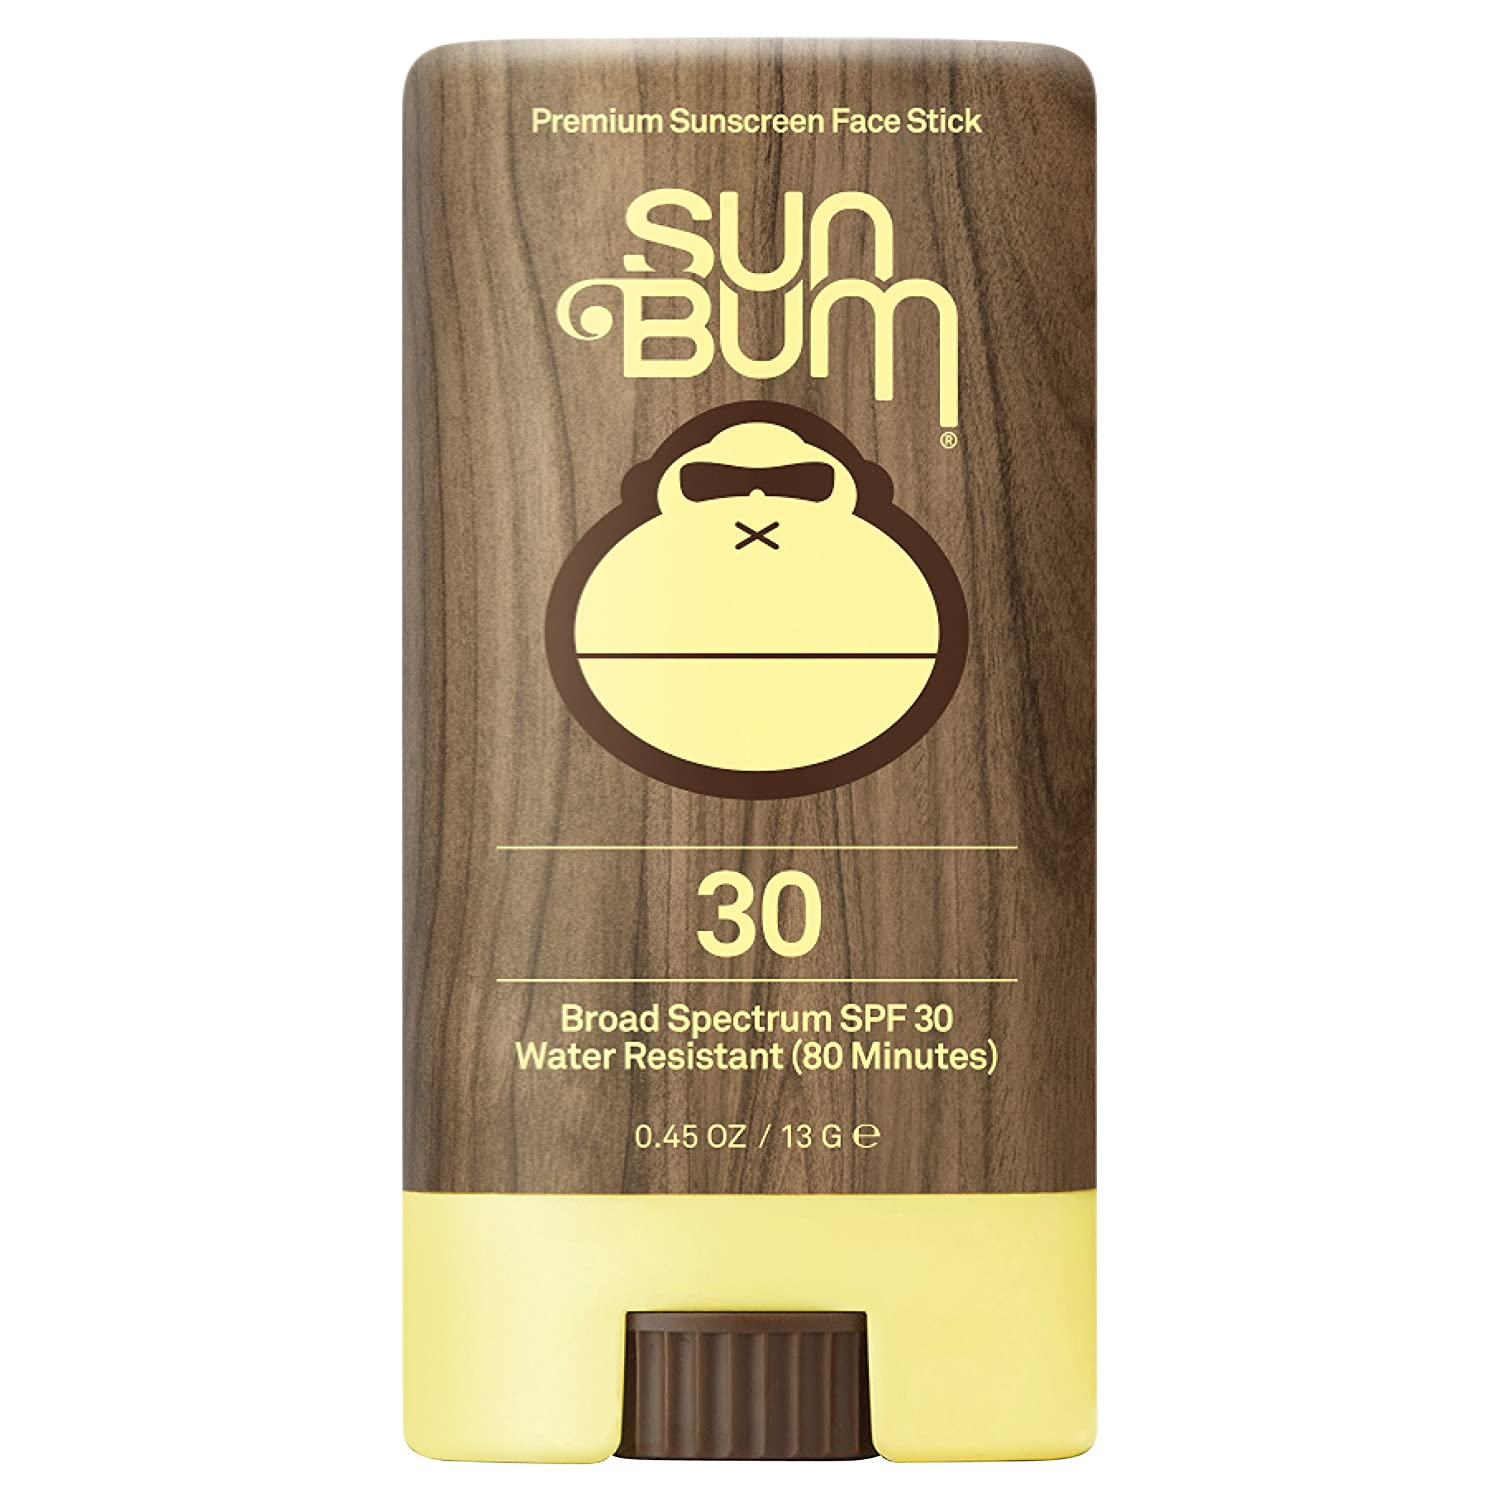 Sunbum Sunscreen Face Stick - Best Sunscreen Moisturizer for Rosacea Skin